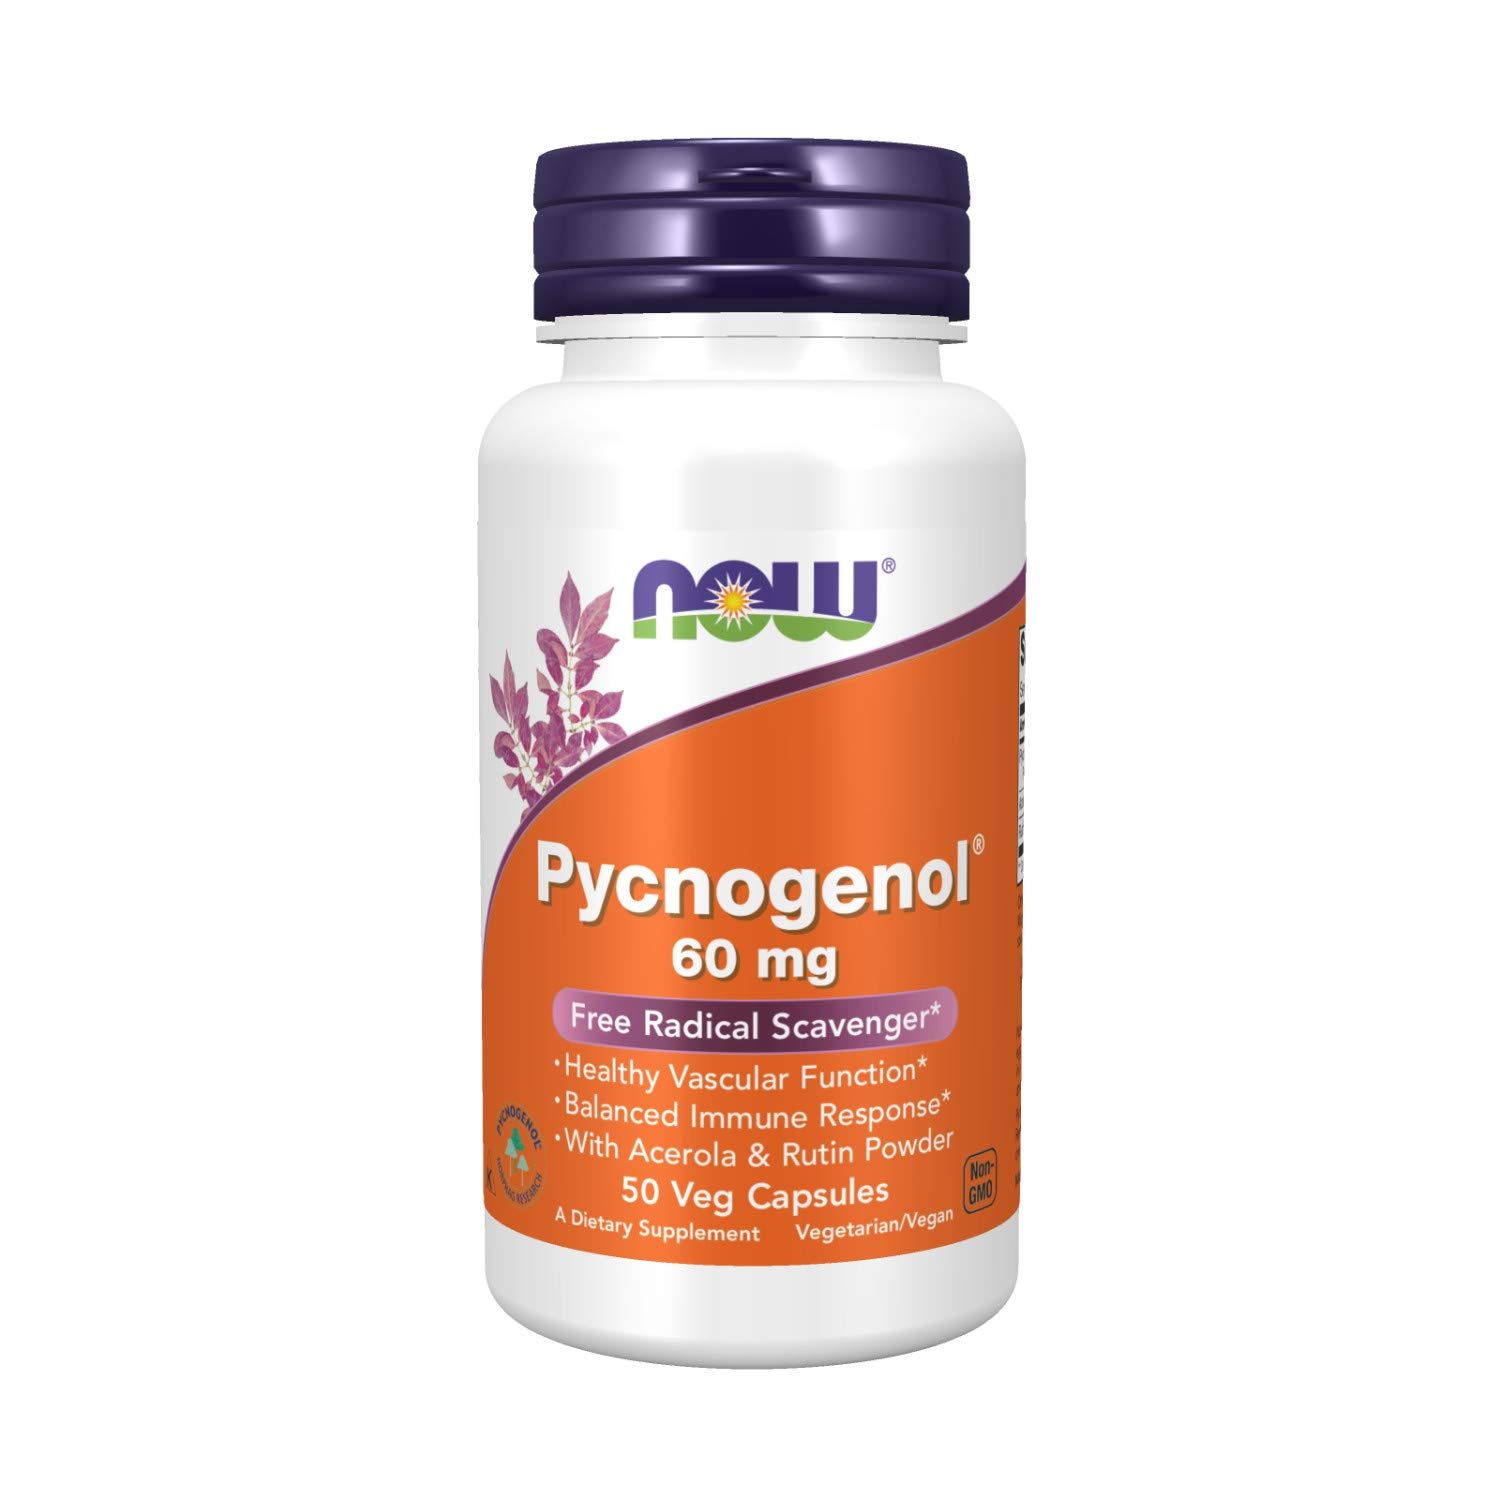 NOW Supplements, Pycnogenol 60 mg (a Unique Combo of Proanthocyanidins from French Maritime Pine) with Acerola & Rutin Powder, 50 Veg Capsules